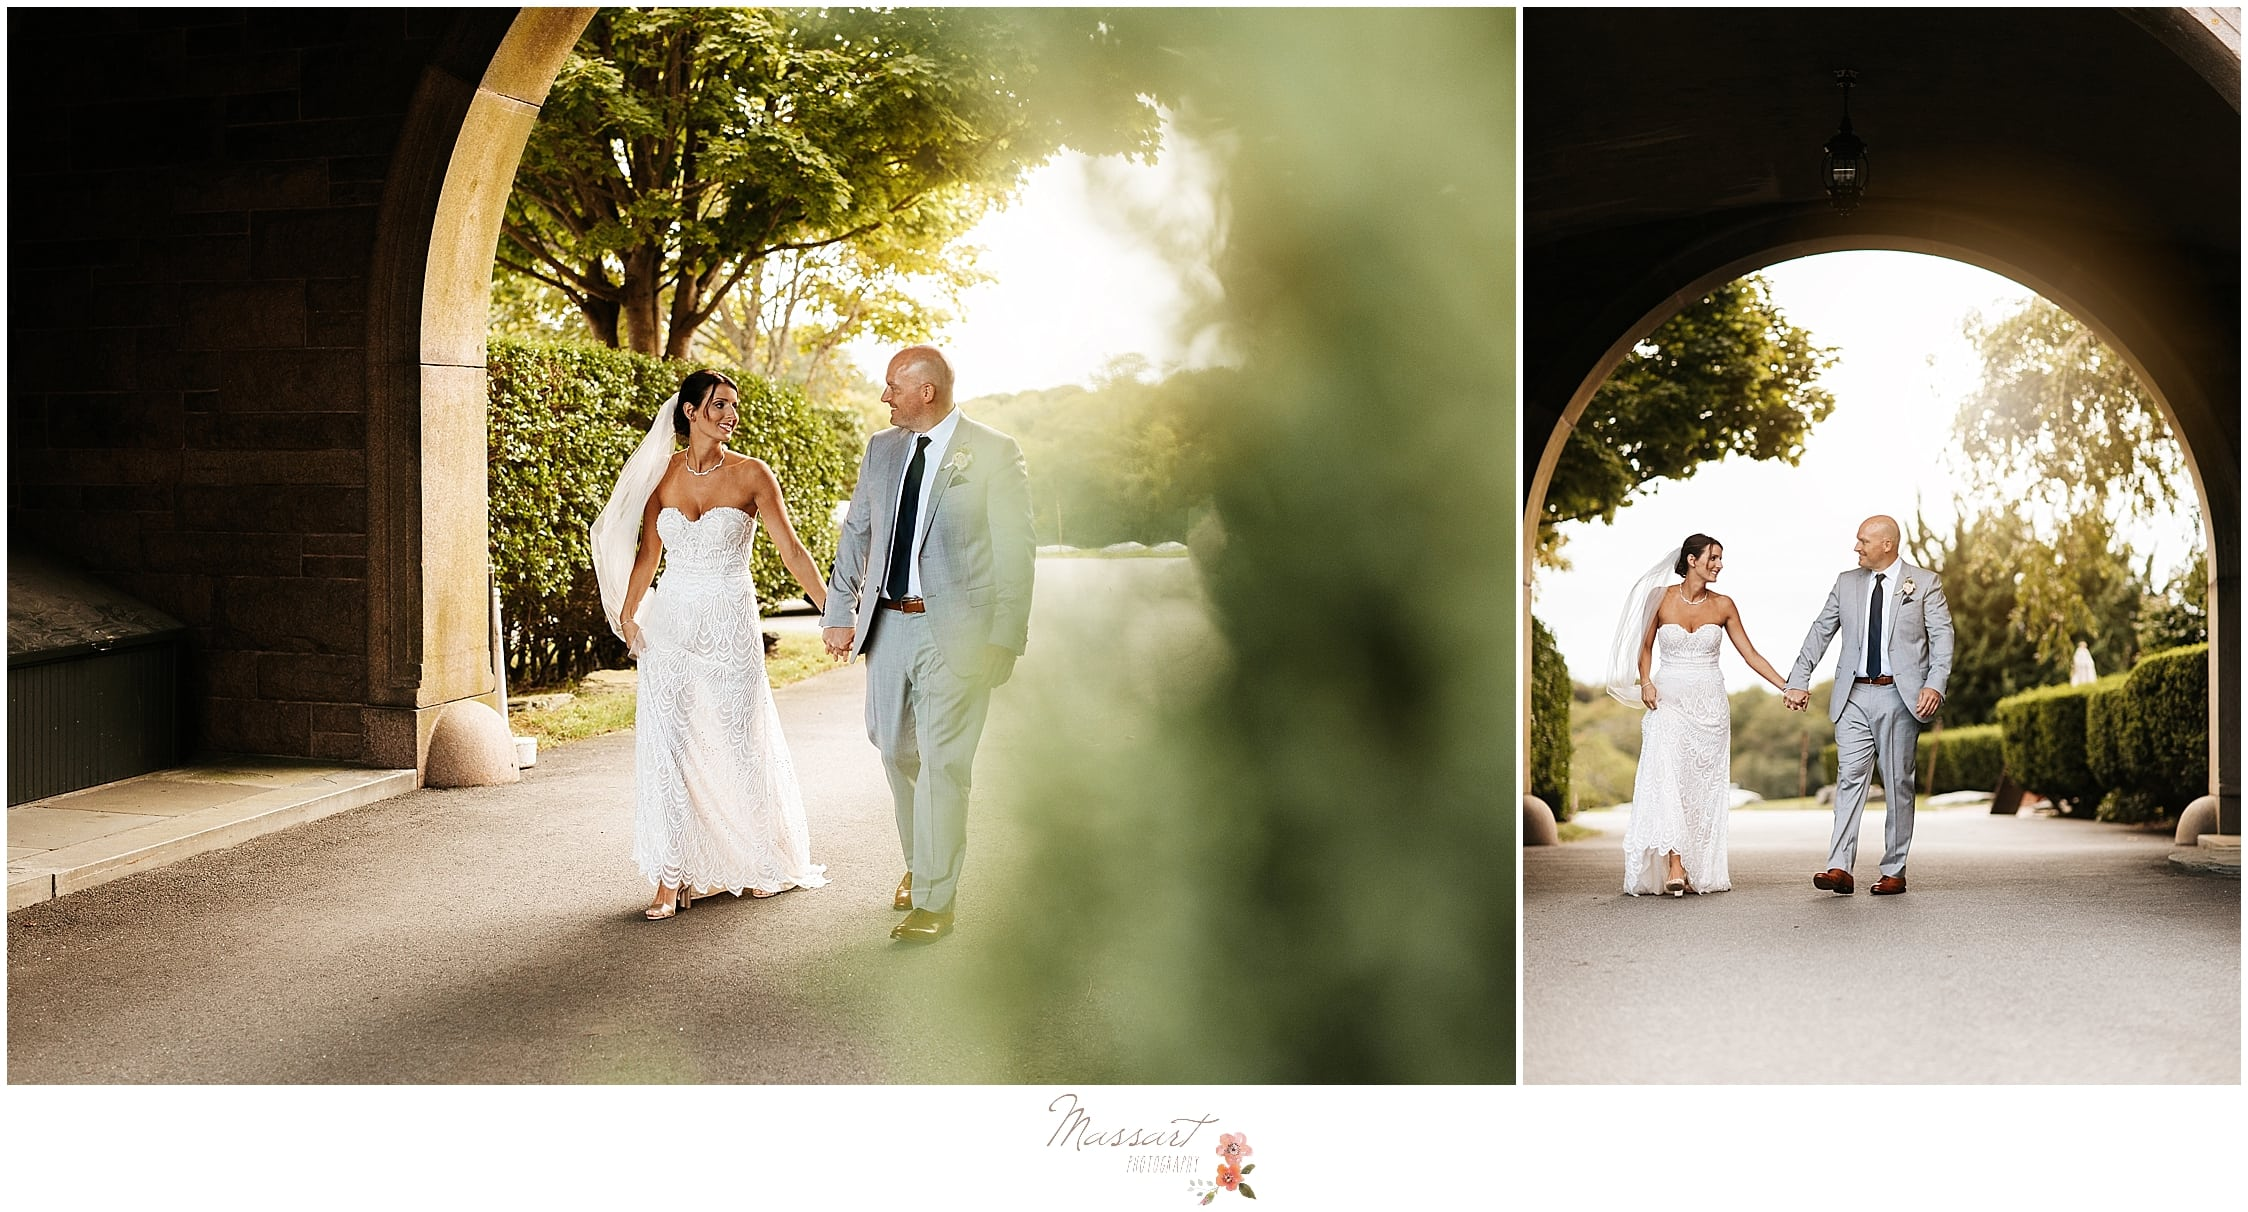 Classic bride and groom portraits at Oceancliff Resort with Rhode Island wedding photographers Massart Photography